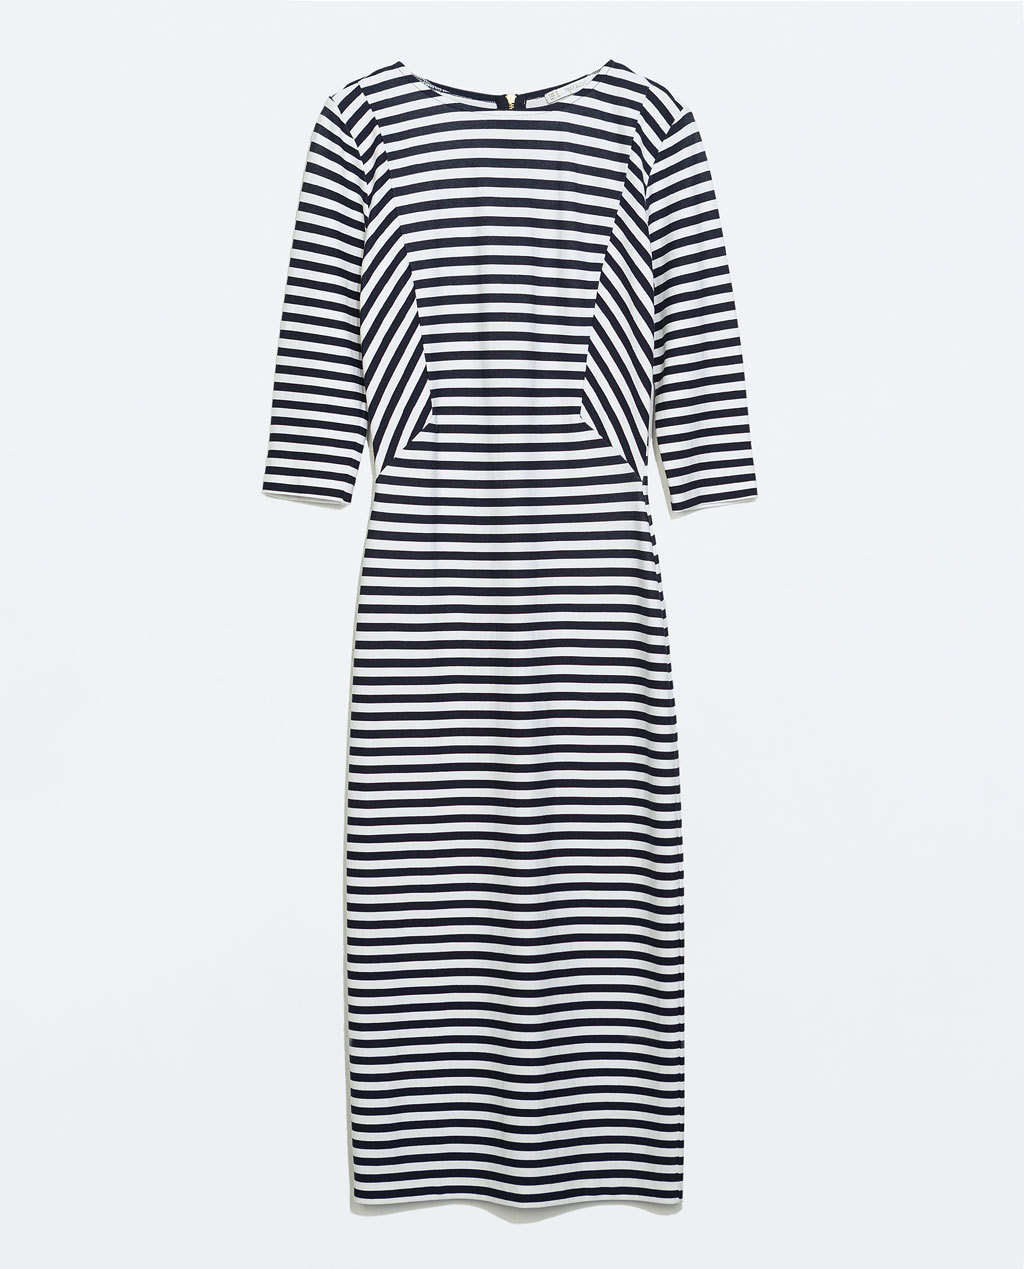 Striped Dress - style: shift; length: below the knee; pattern: horizontal stripes; secondary colour: white; predominant colour: navy; occasions: casual, creative work; fit: body skimming; fibres: viscose/rayon - stretch; neckline: crew; sleeve length: 3/4 length; sleeve style: standard; texture group: jersey - clingy; pattern type: fabric; pattern size: standard; season: a/w 2014